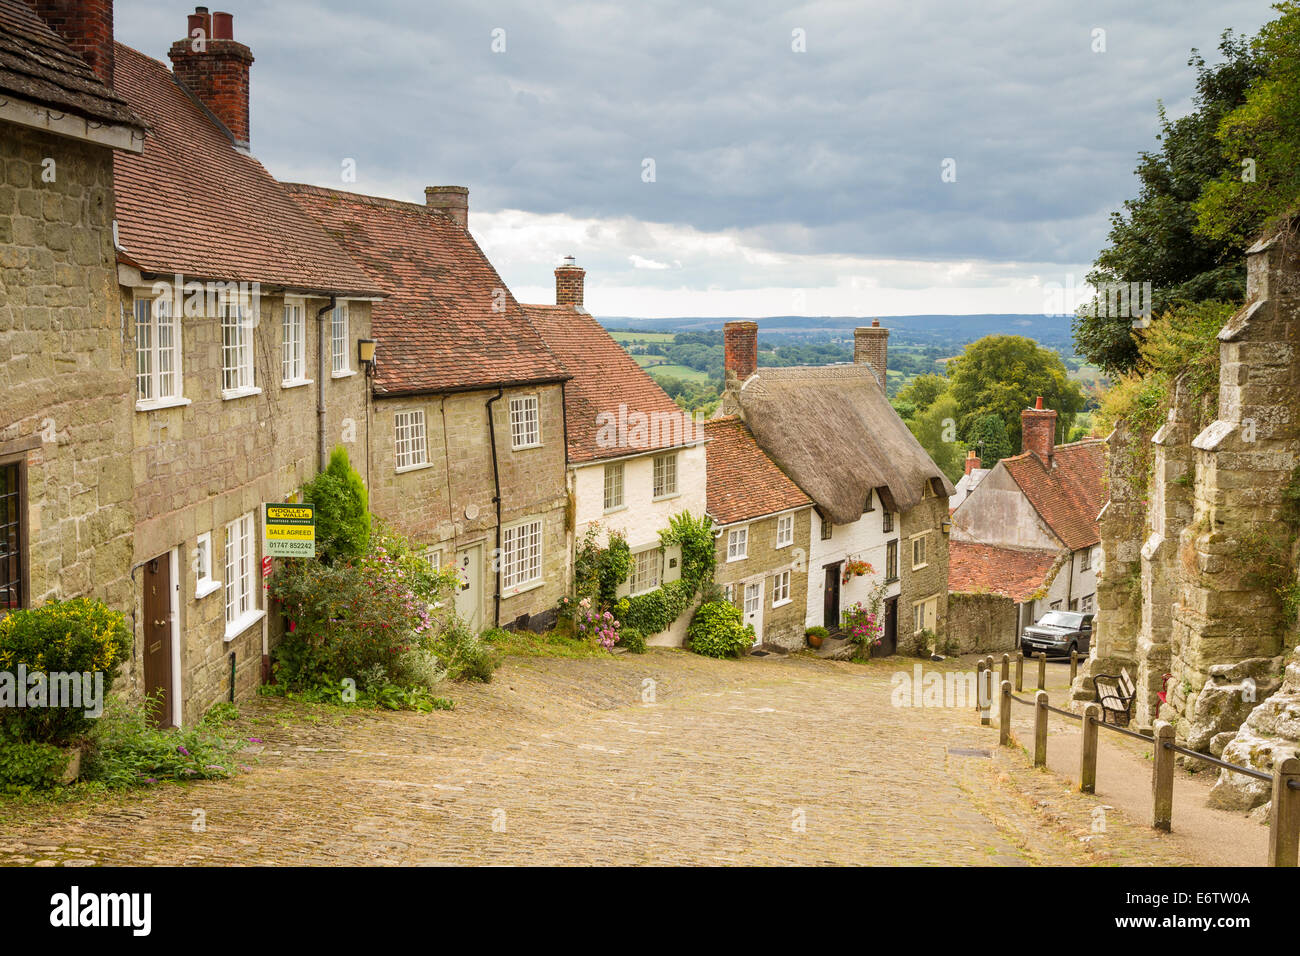 Gold Hill aka Hovis Hill in Shaftesbury, Dorset. Made famous by the 1973 Hovis Television advert - Stock Image